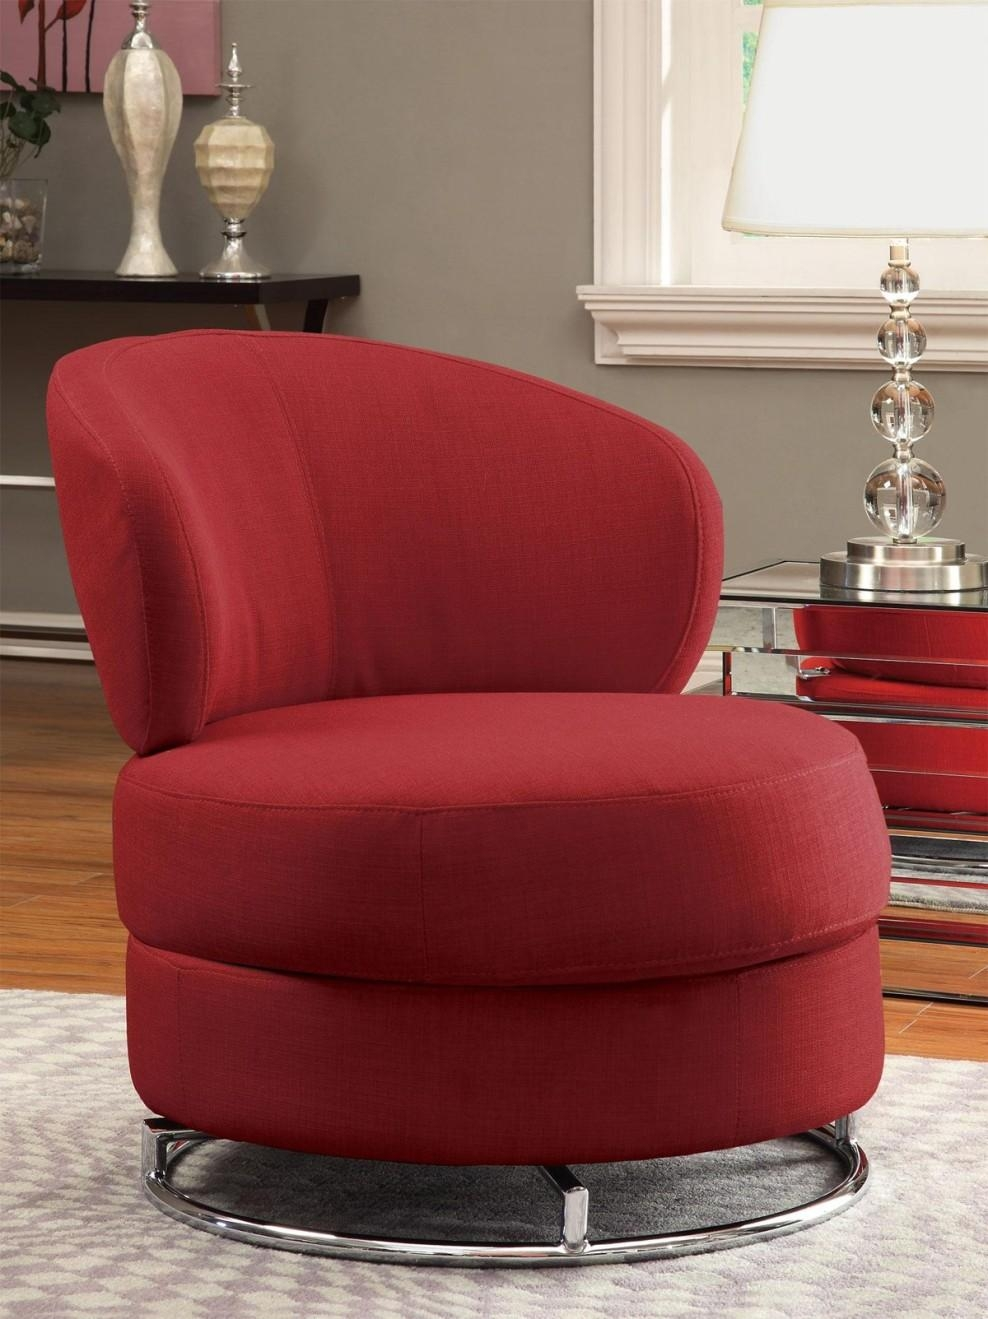 Round Living Room Chair Living Room Design And Living Room Ideas Inside Round Sofa Chair Living Room Furniture (Image 10 of 20)